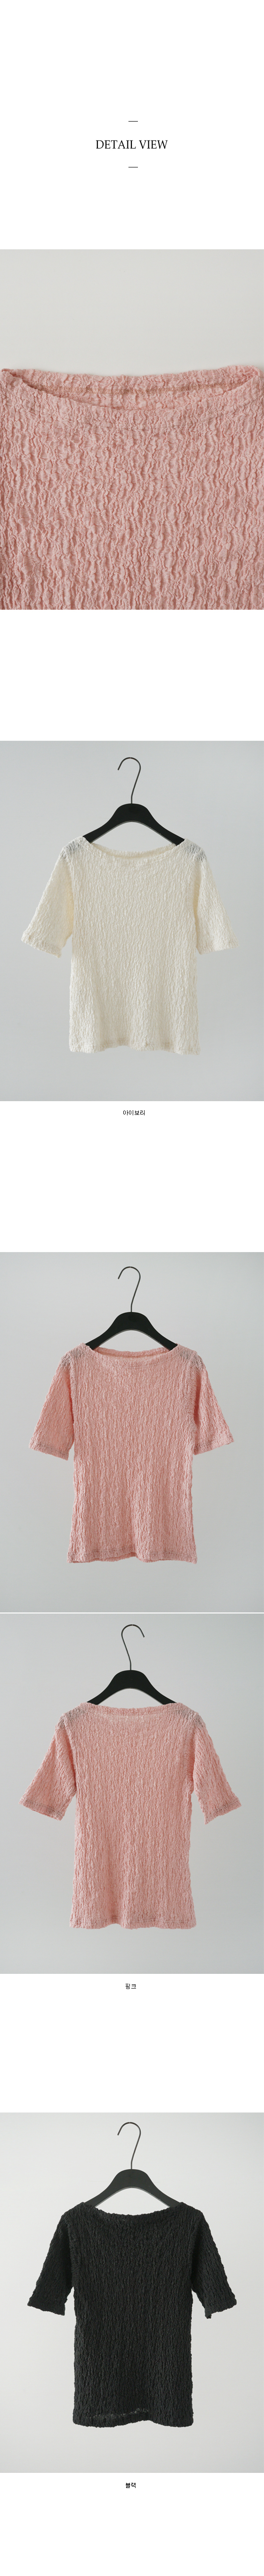 snug texture half sleeve top